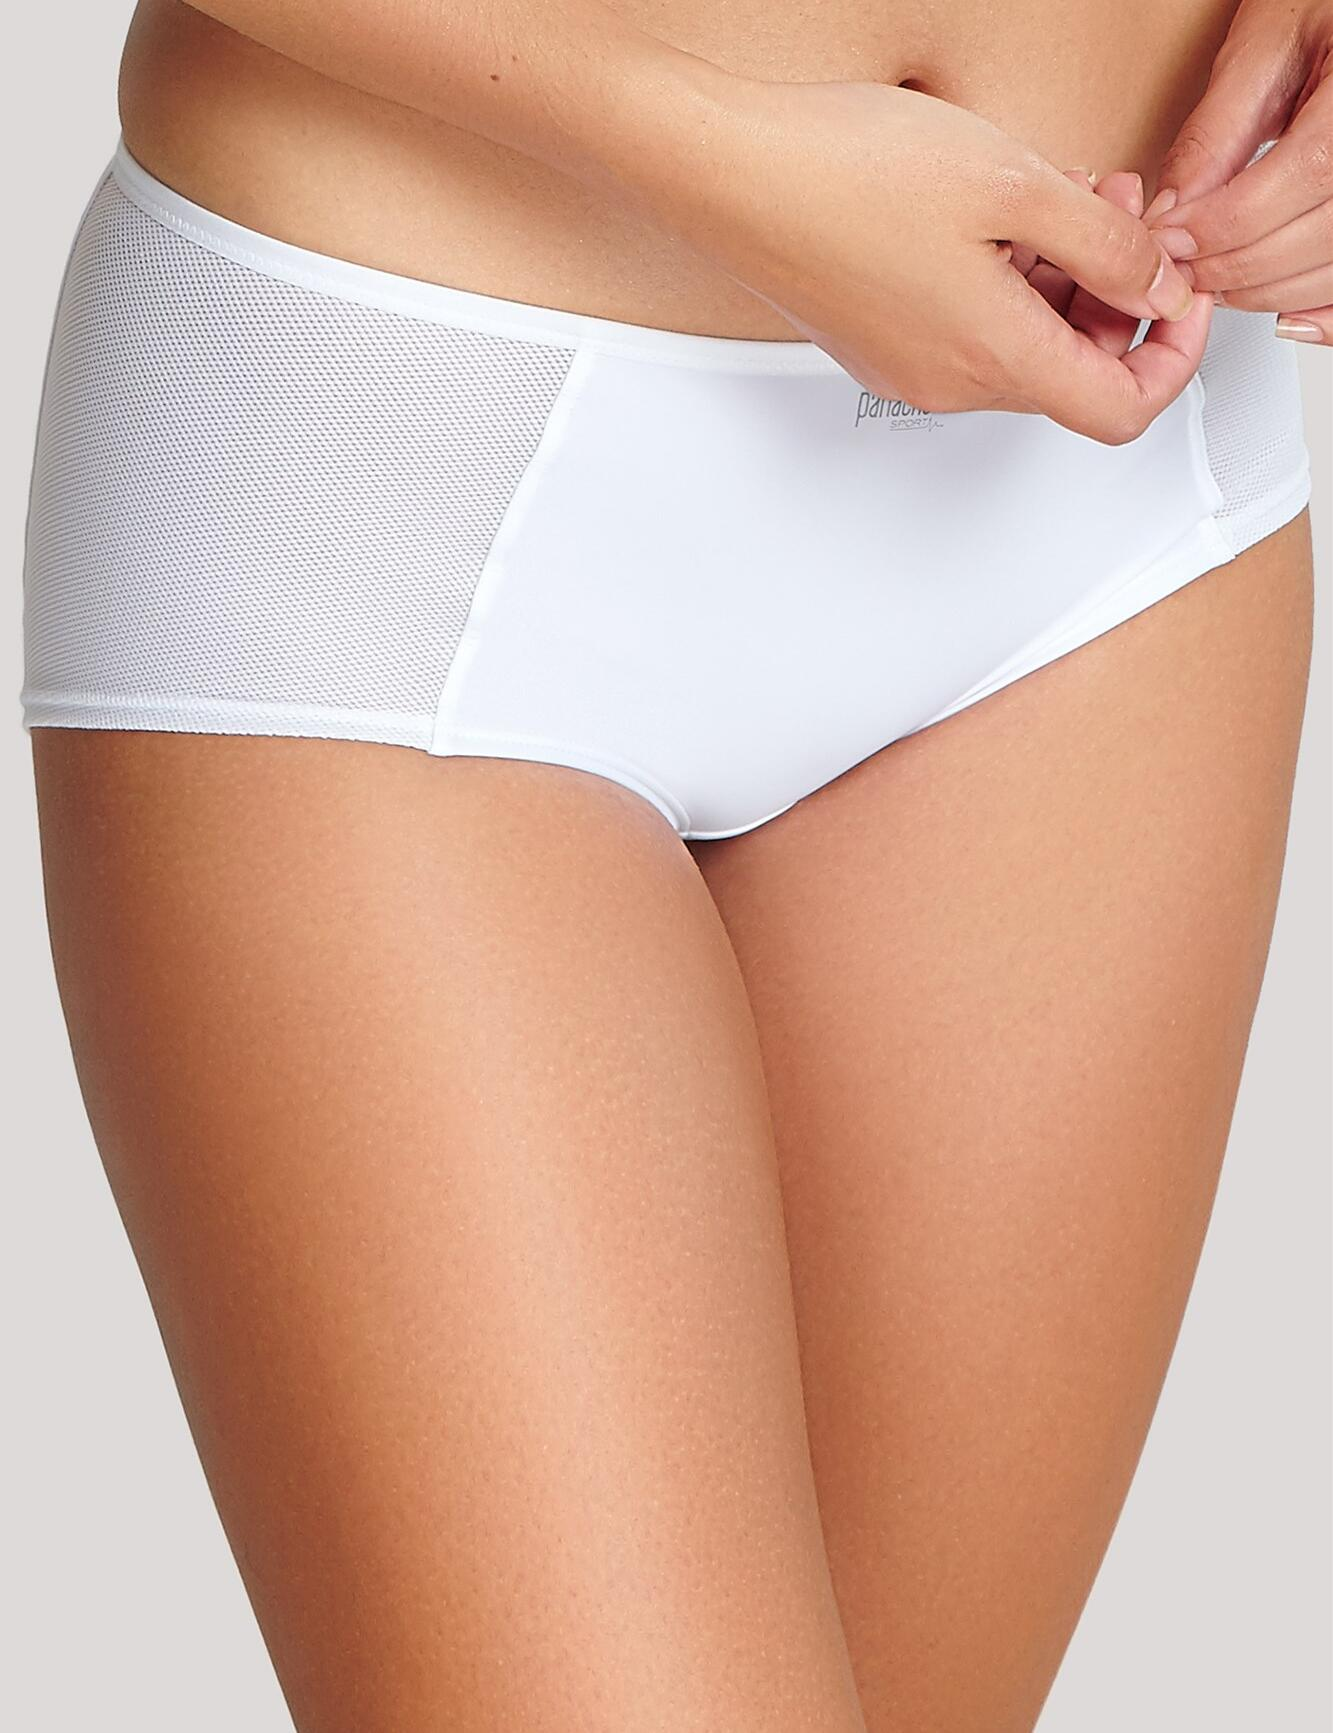 Matching Briefs for Sports Bras for Saggy Breasts